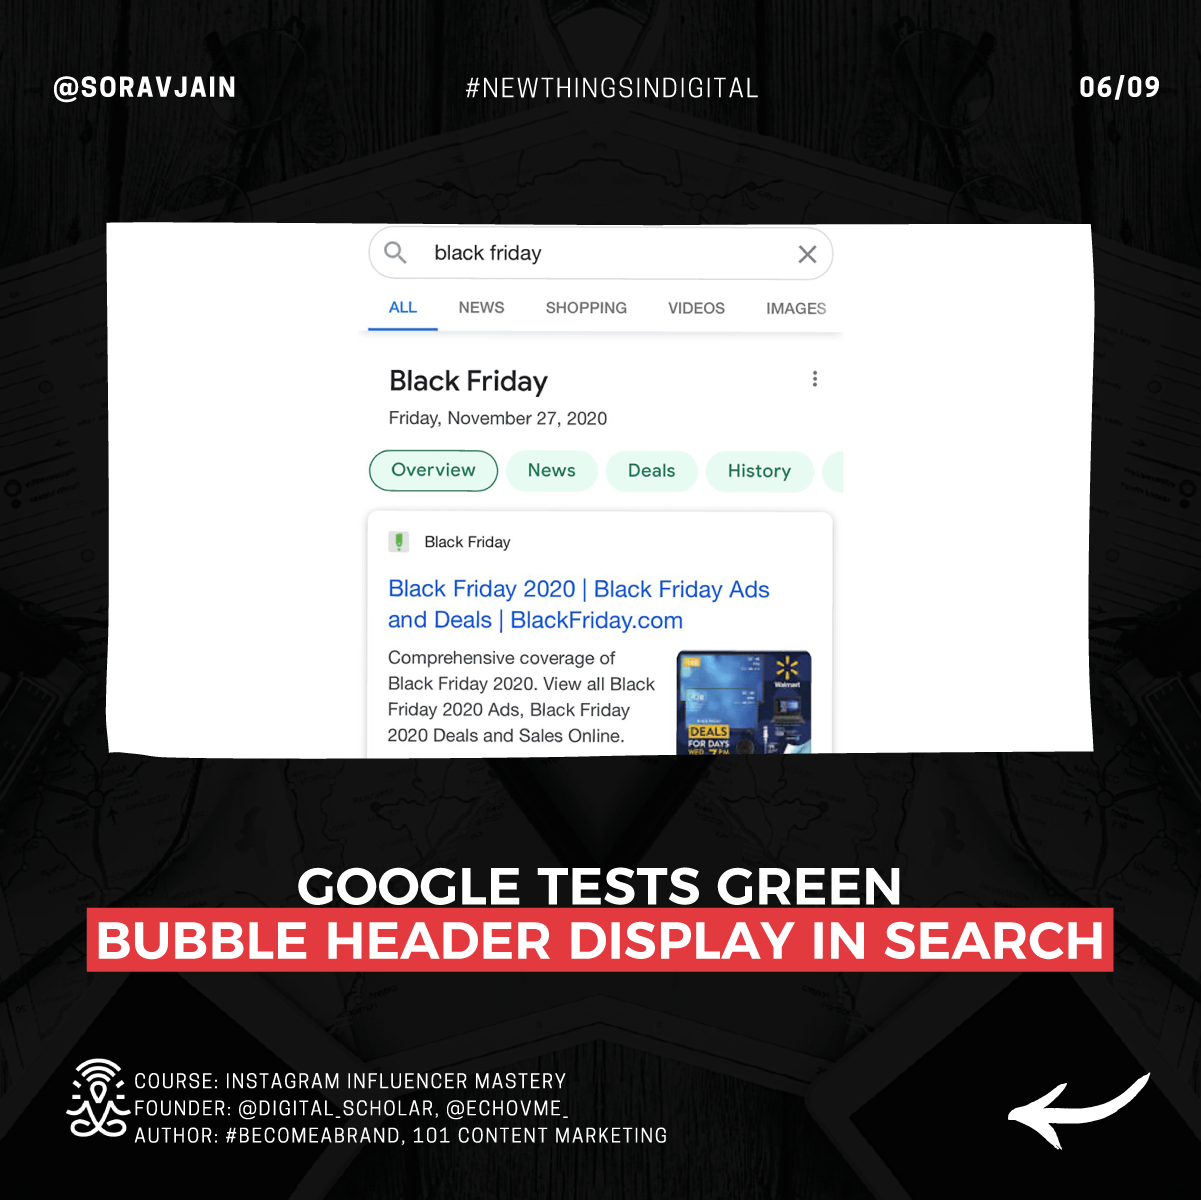 Google Tests Green Bubble Header Display In Search